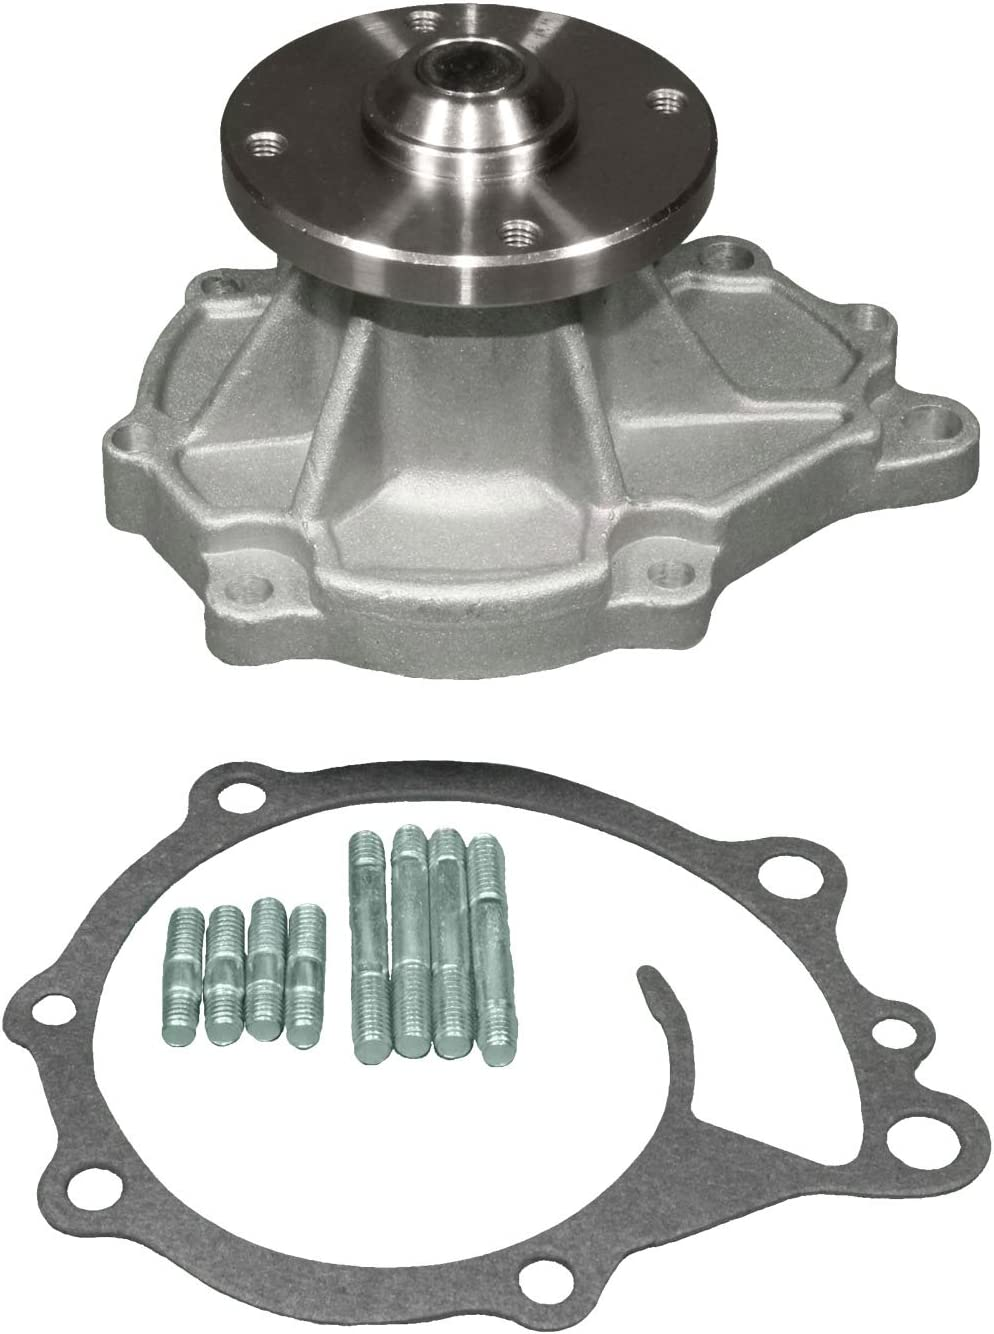 ACDelco 252-284 Professional Water Pump Kit